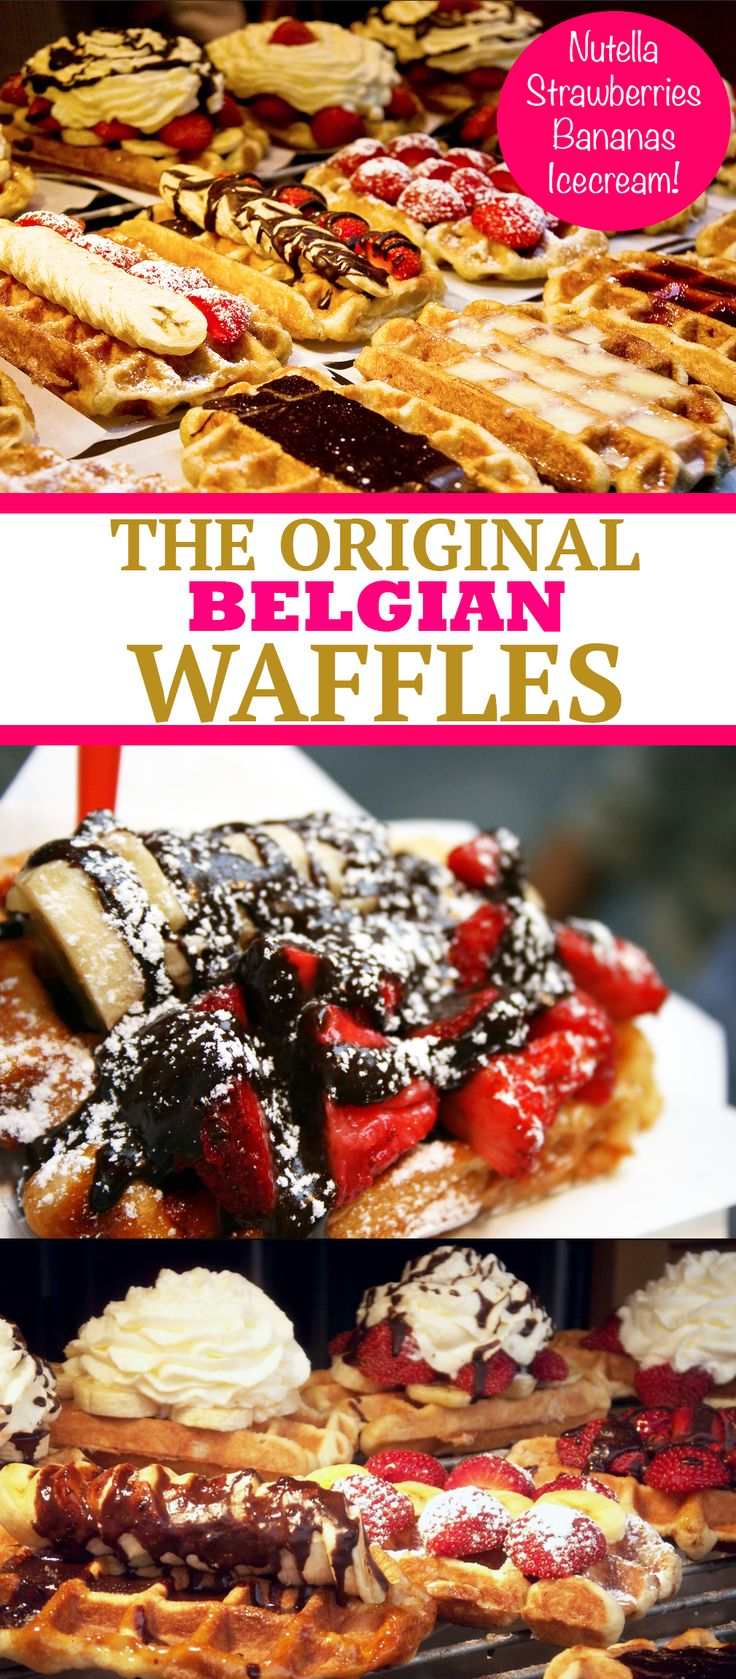 Made with real belgian chocolate this fun chocolate animals make - Belgian Waffles With Ice Cream Nutella Banana And Strawberries